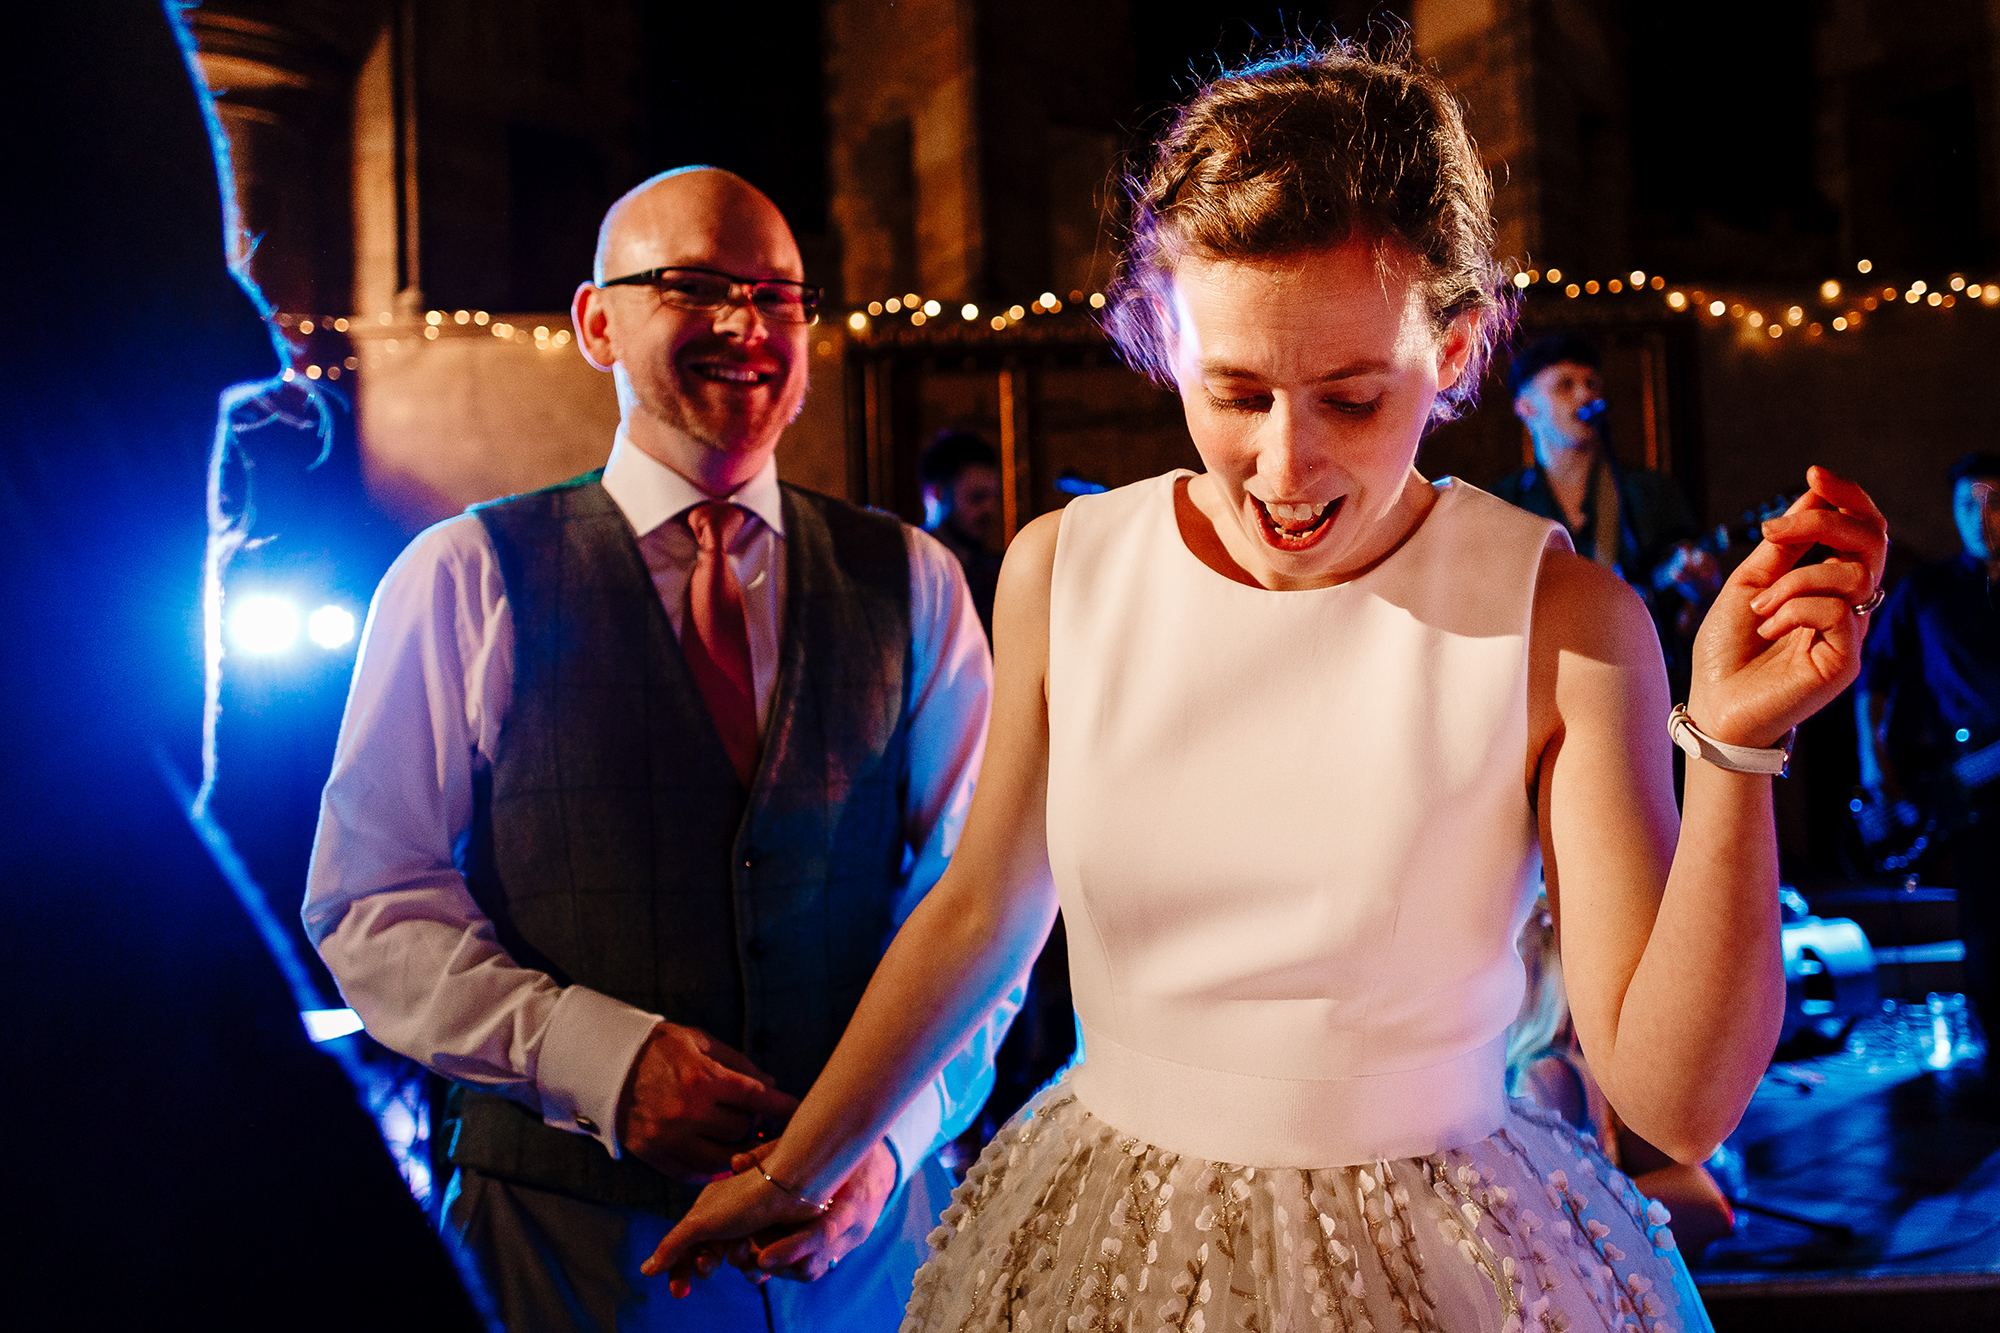 A bride dancing and smiling while a groom smiles behind her